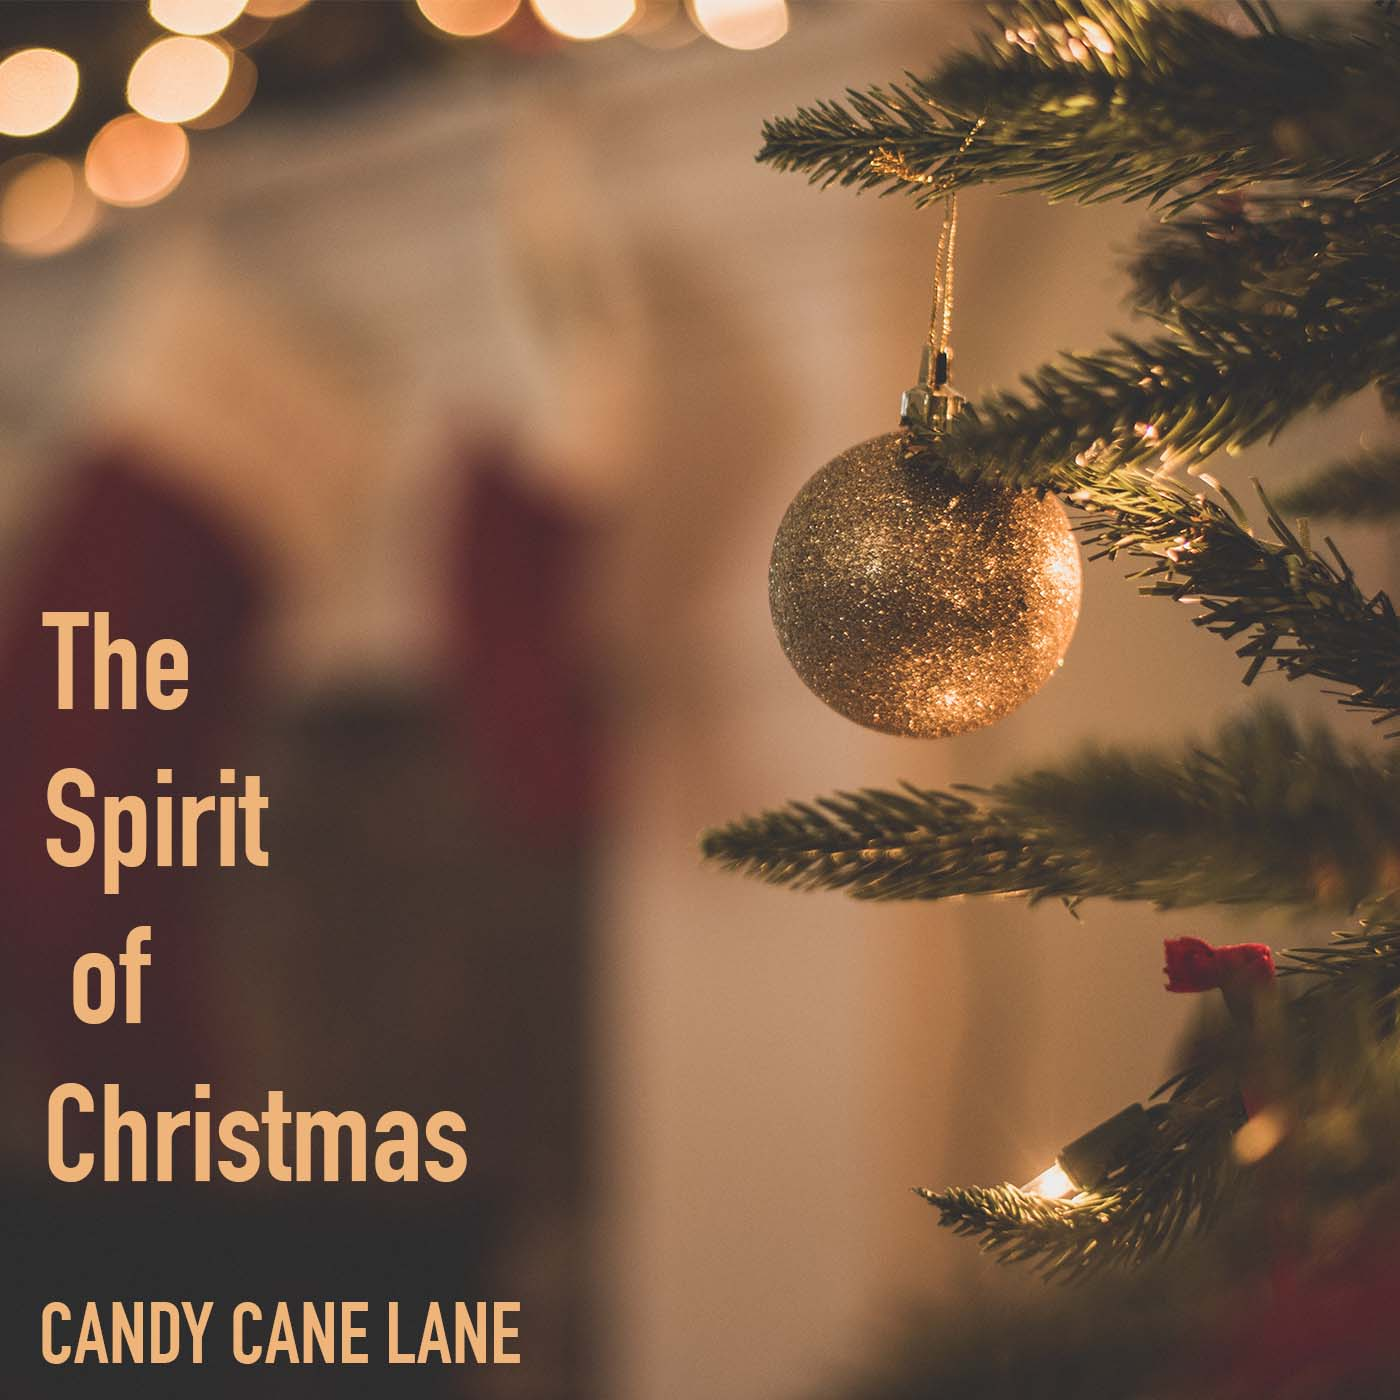 The Spirit of Christmas - Candy Candy Lane